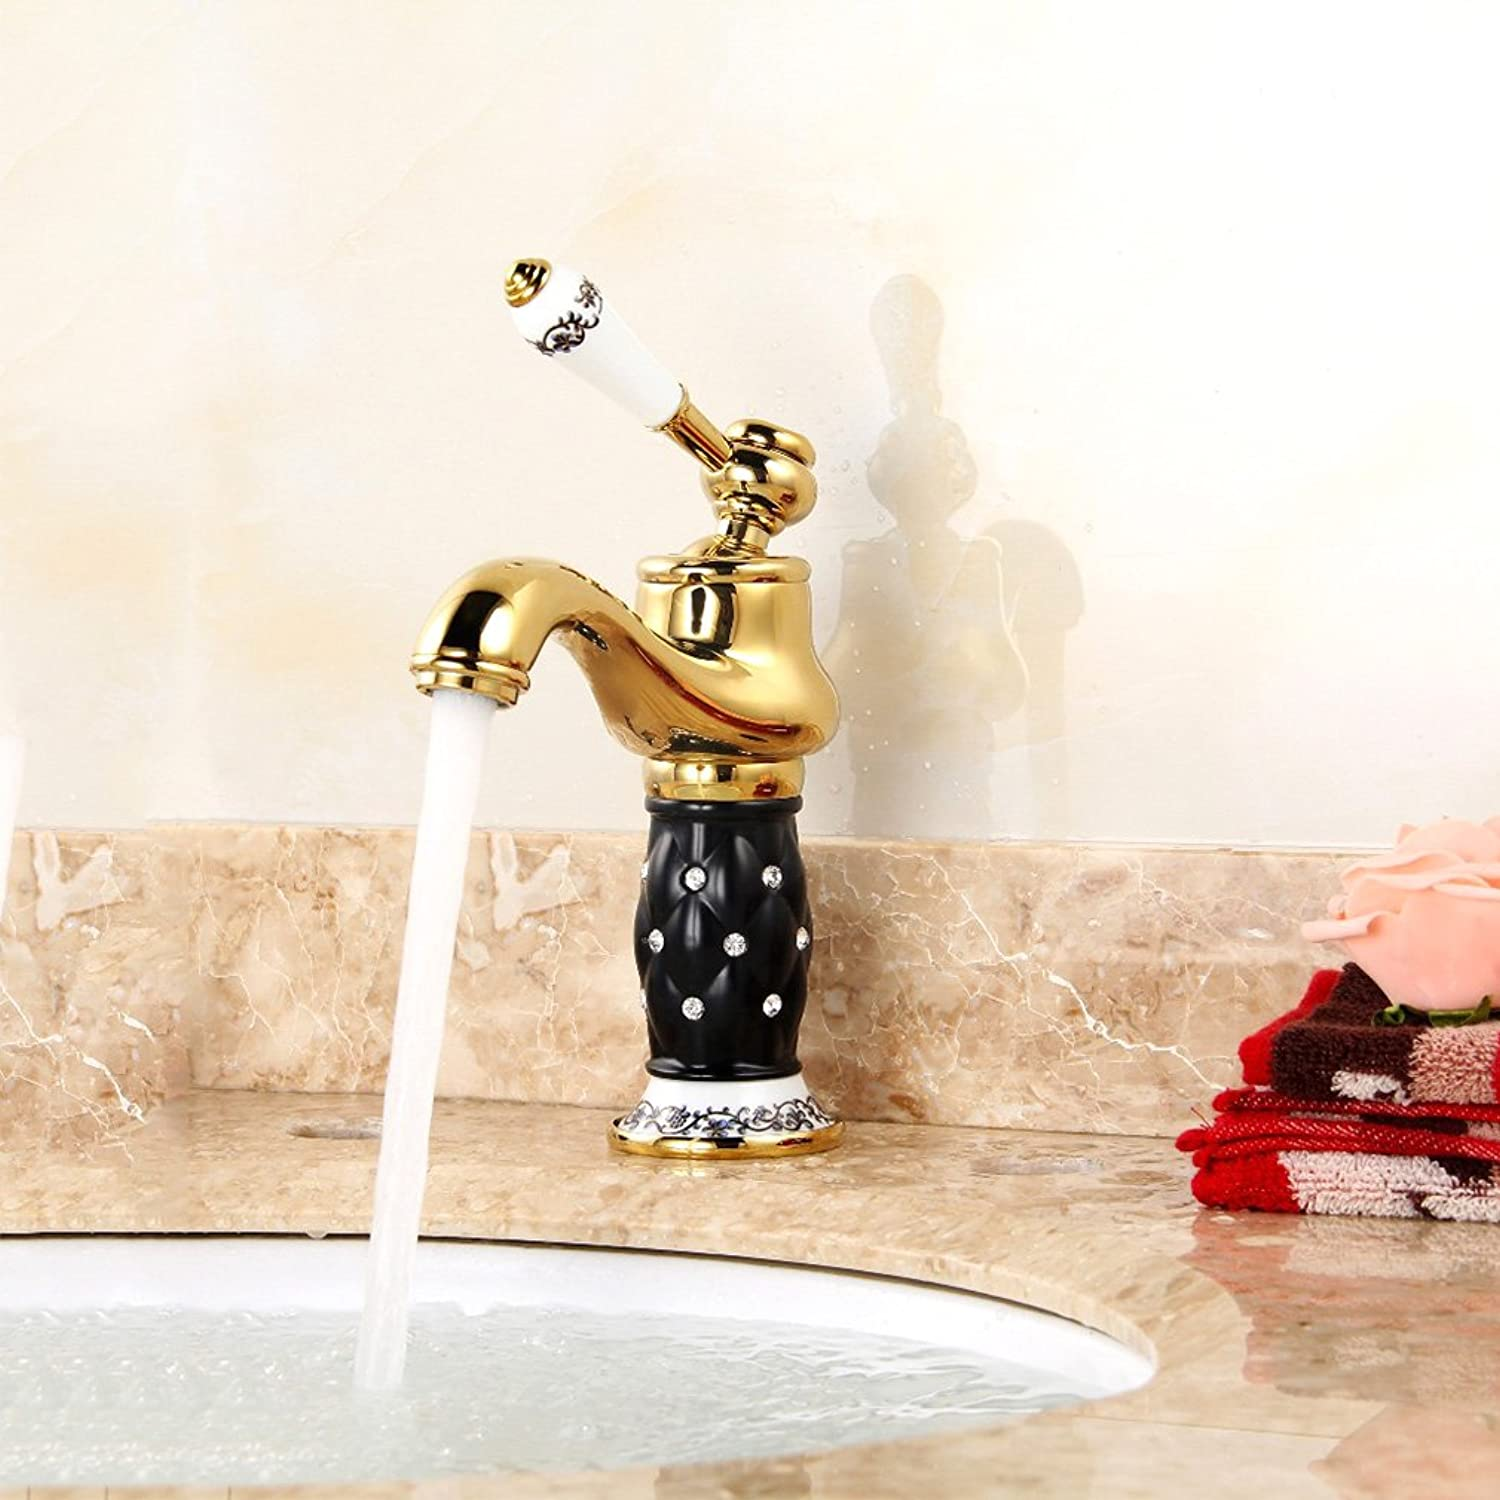 QJIAXING Bathroom Basin Faucet Antique gold-Plated Copper Single Handle With Diamond Ceramic Base golden Hot And Cold Mixer Sink Taps,Blackgold